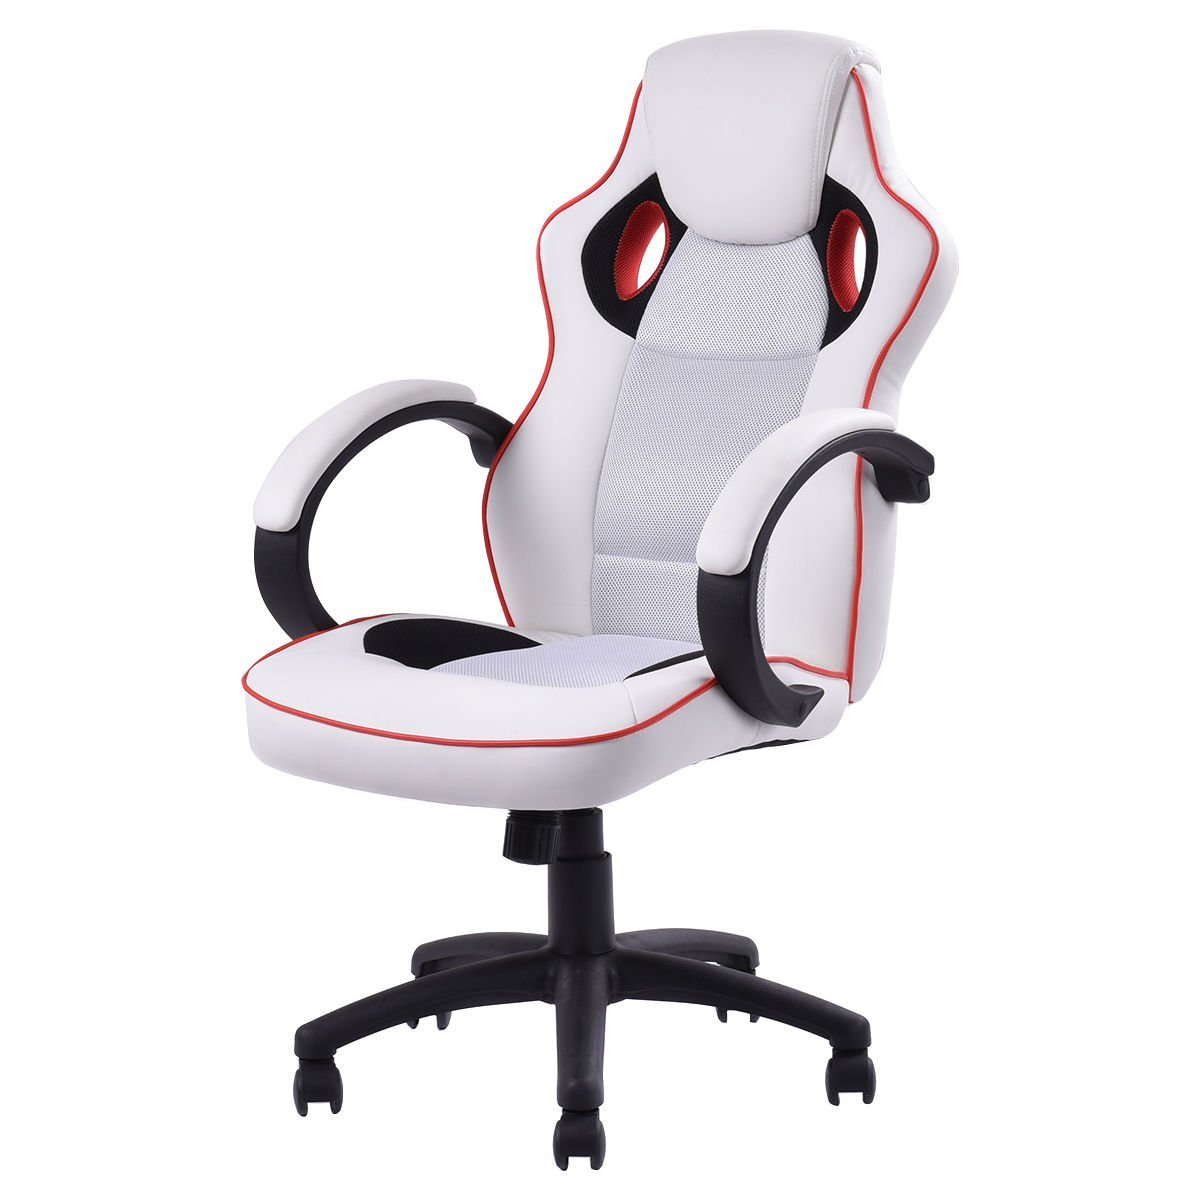 gaming chairs pc wheelchair yoga dvd  best chair under 100 cheap reviews